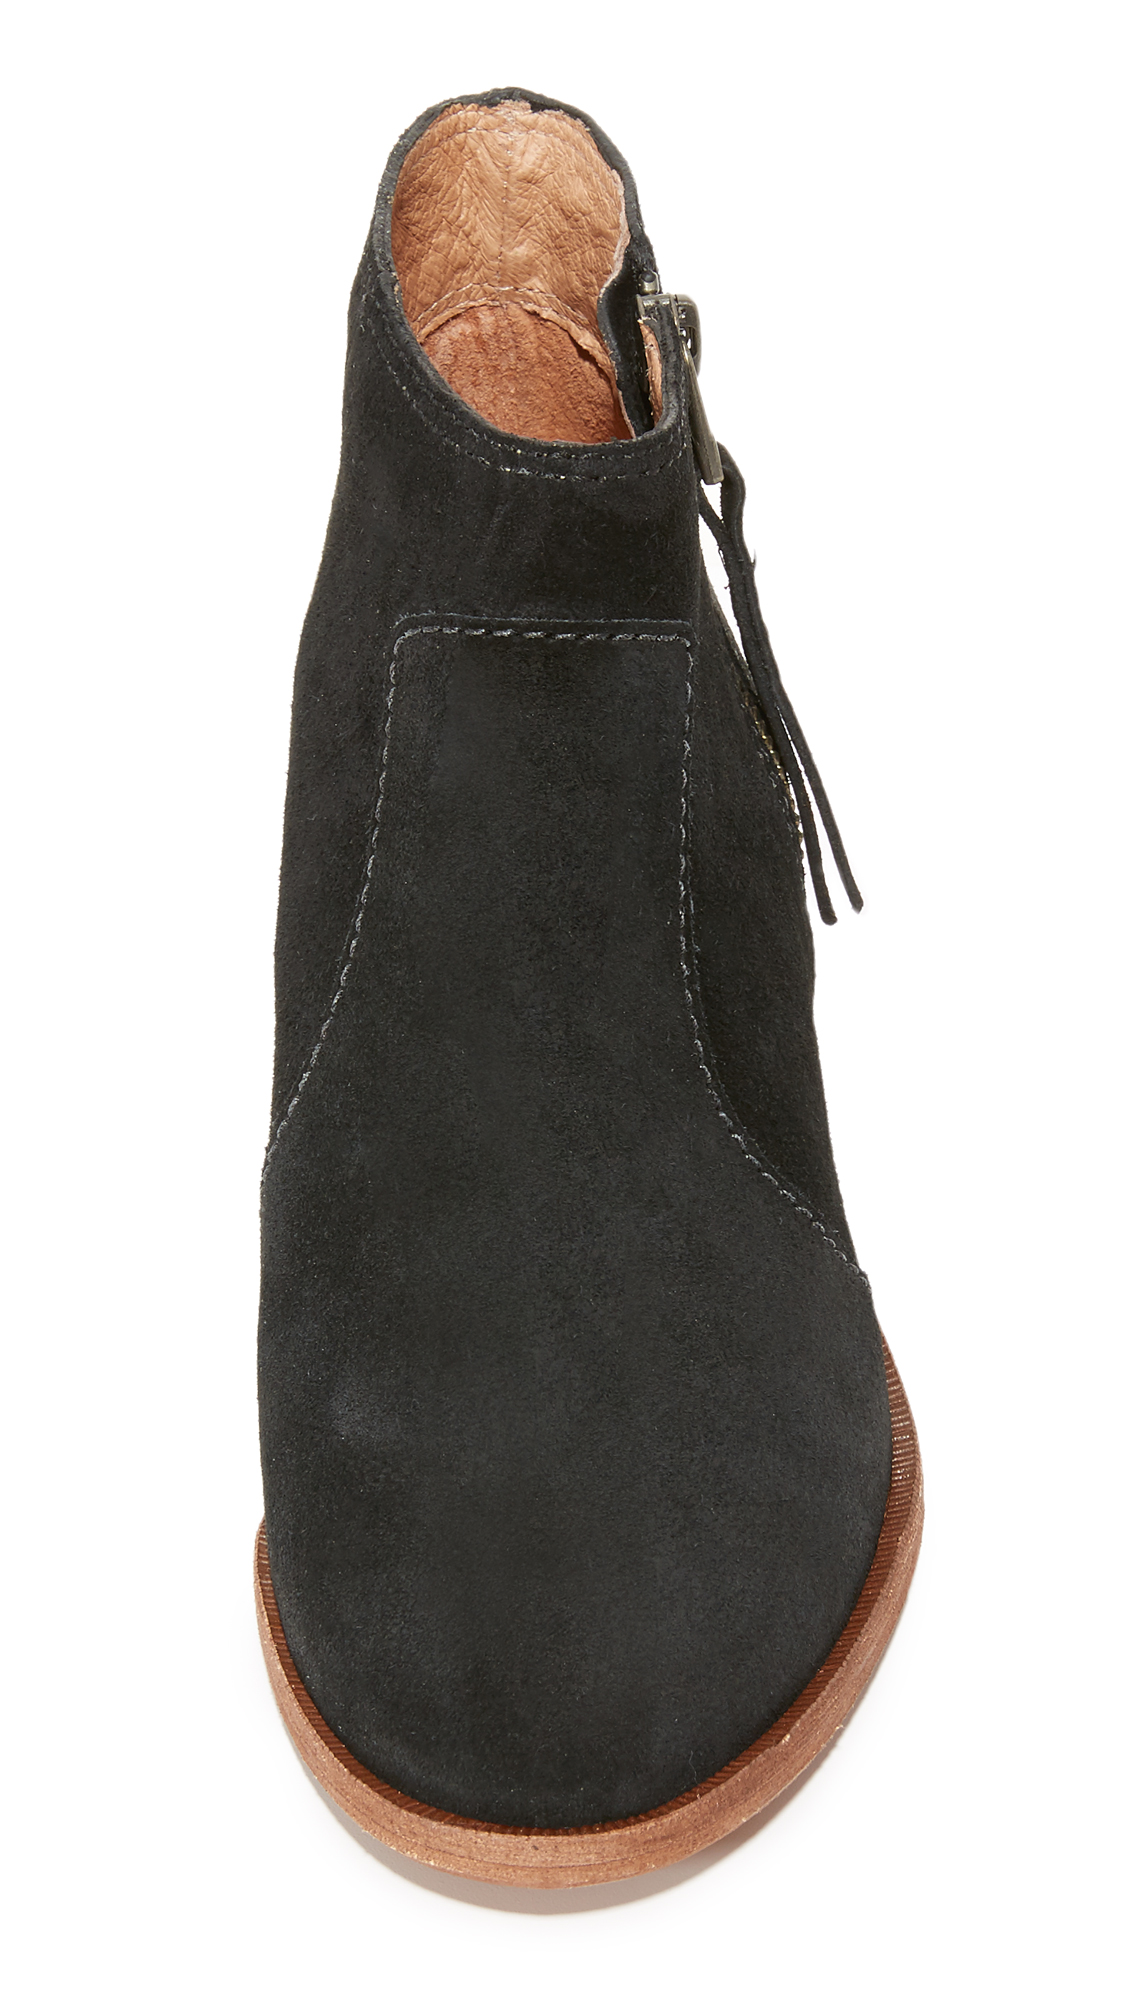 Madewell Janice Booties Shopbop D Island Shoes Casual Zappato England Suede Black